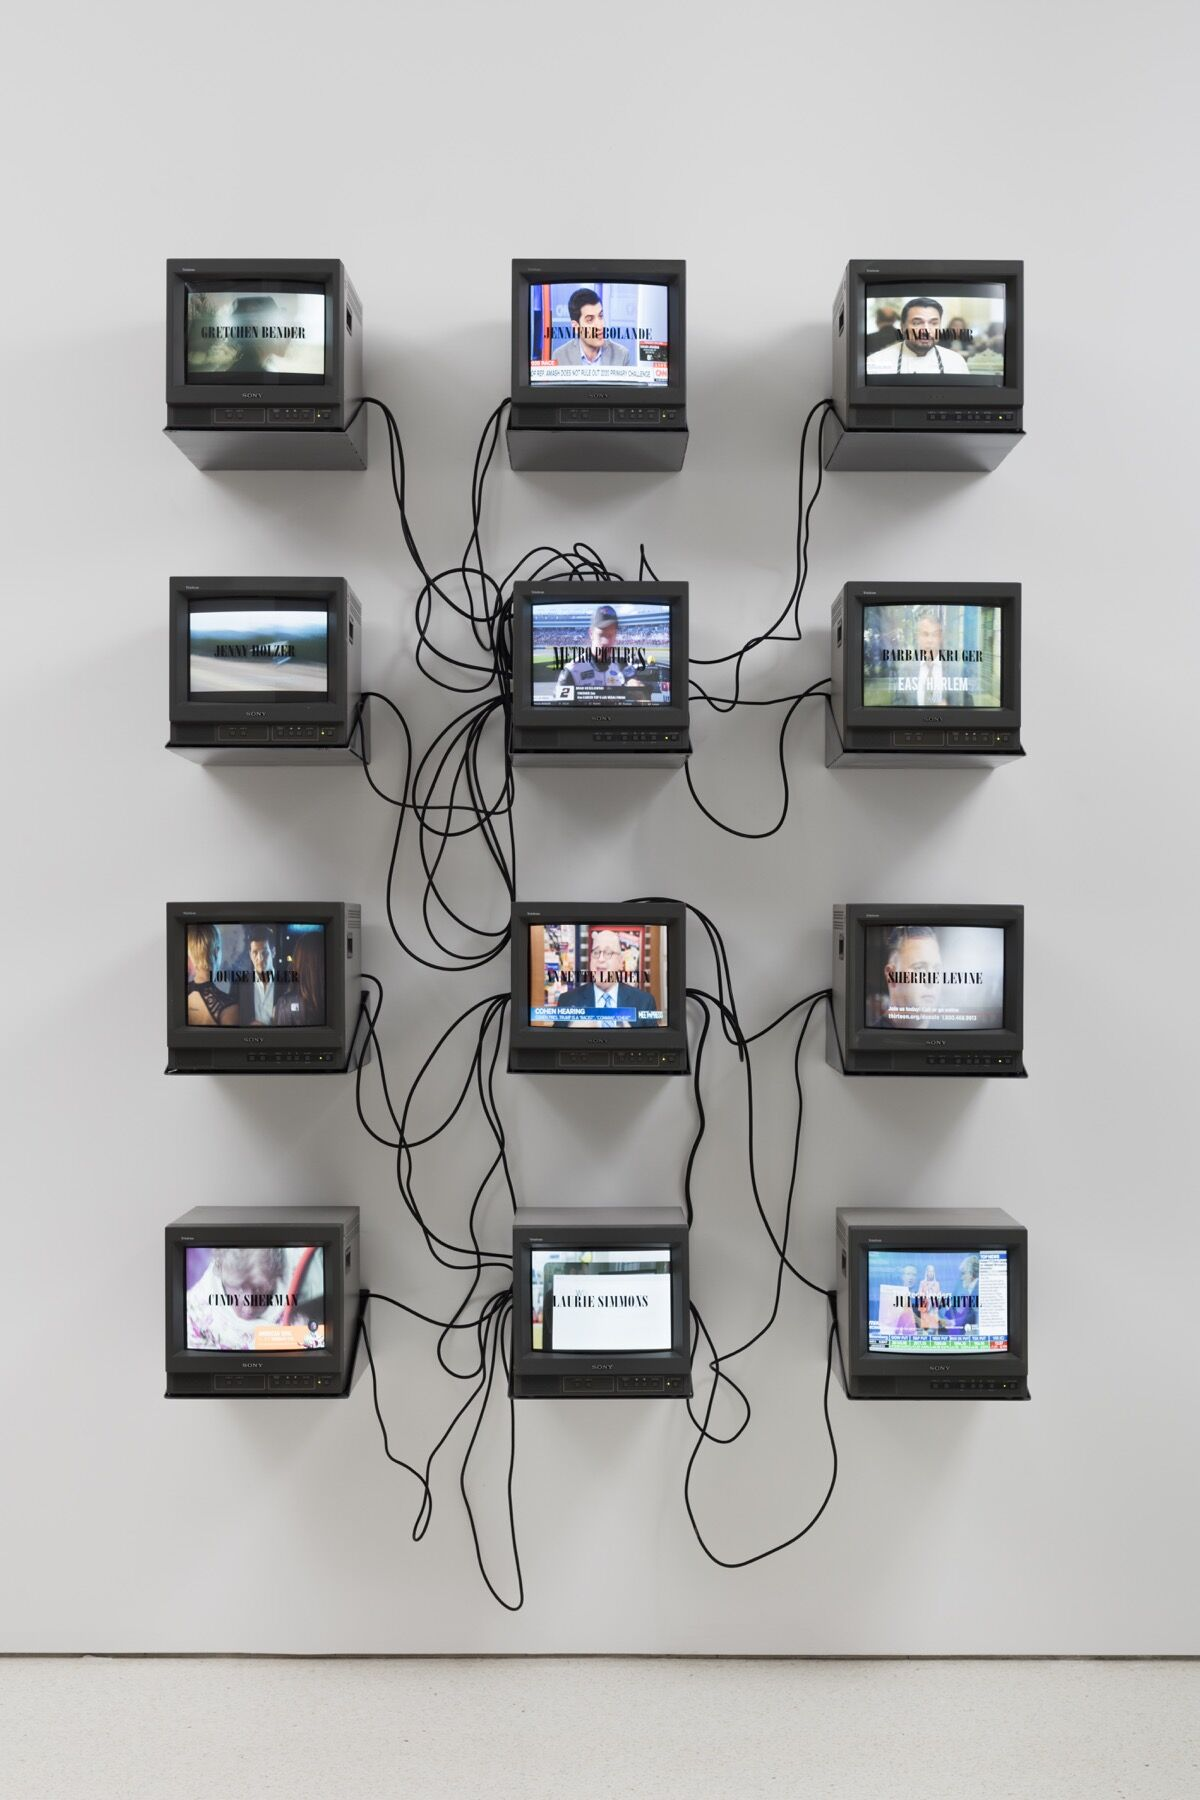 """Installation view of Gretchen Bender, TV, Text, and Image (Metro Pictures Version),  1990, in """"Gretchen Bender: So Much Deathless,"""" Red Bull Arts New York, 2019. Photo by Lance Brewer. © The Gretchen Bender Estate. Courtesy of Red Bull Arts and and OSMOS."""